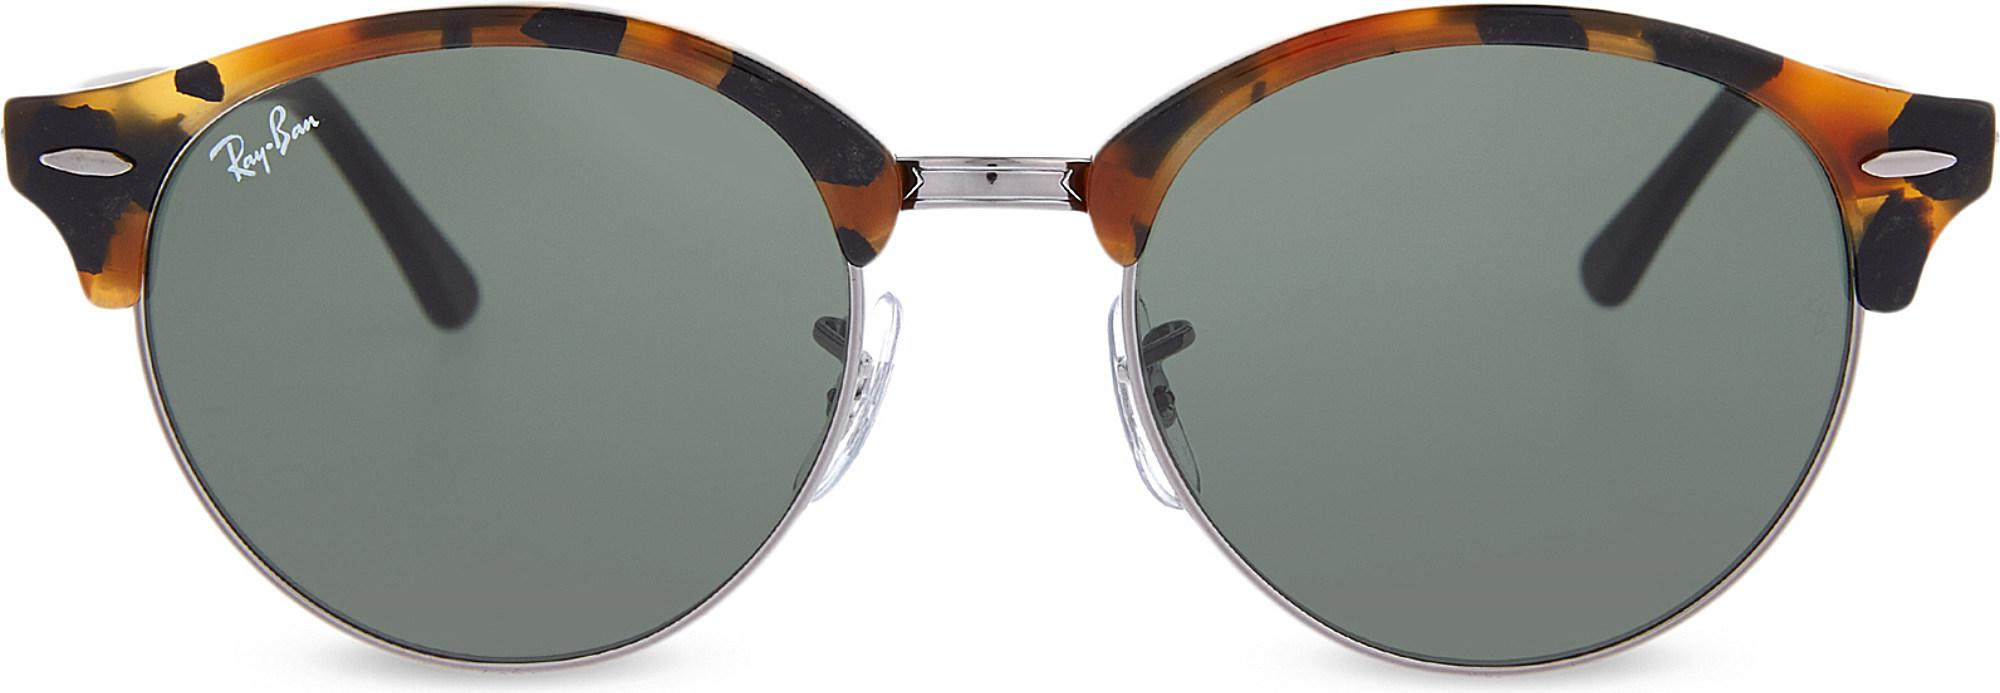 f701545fe4076 Ray-Ban Rb4246 Clubround Sunglasses in Black - Lyst